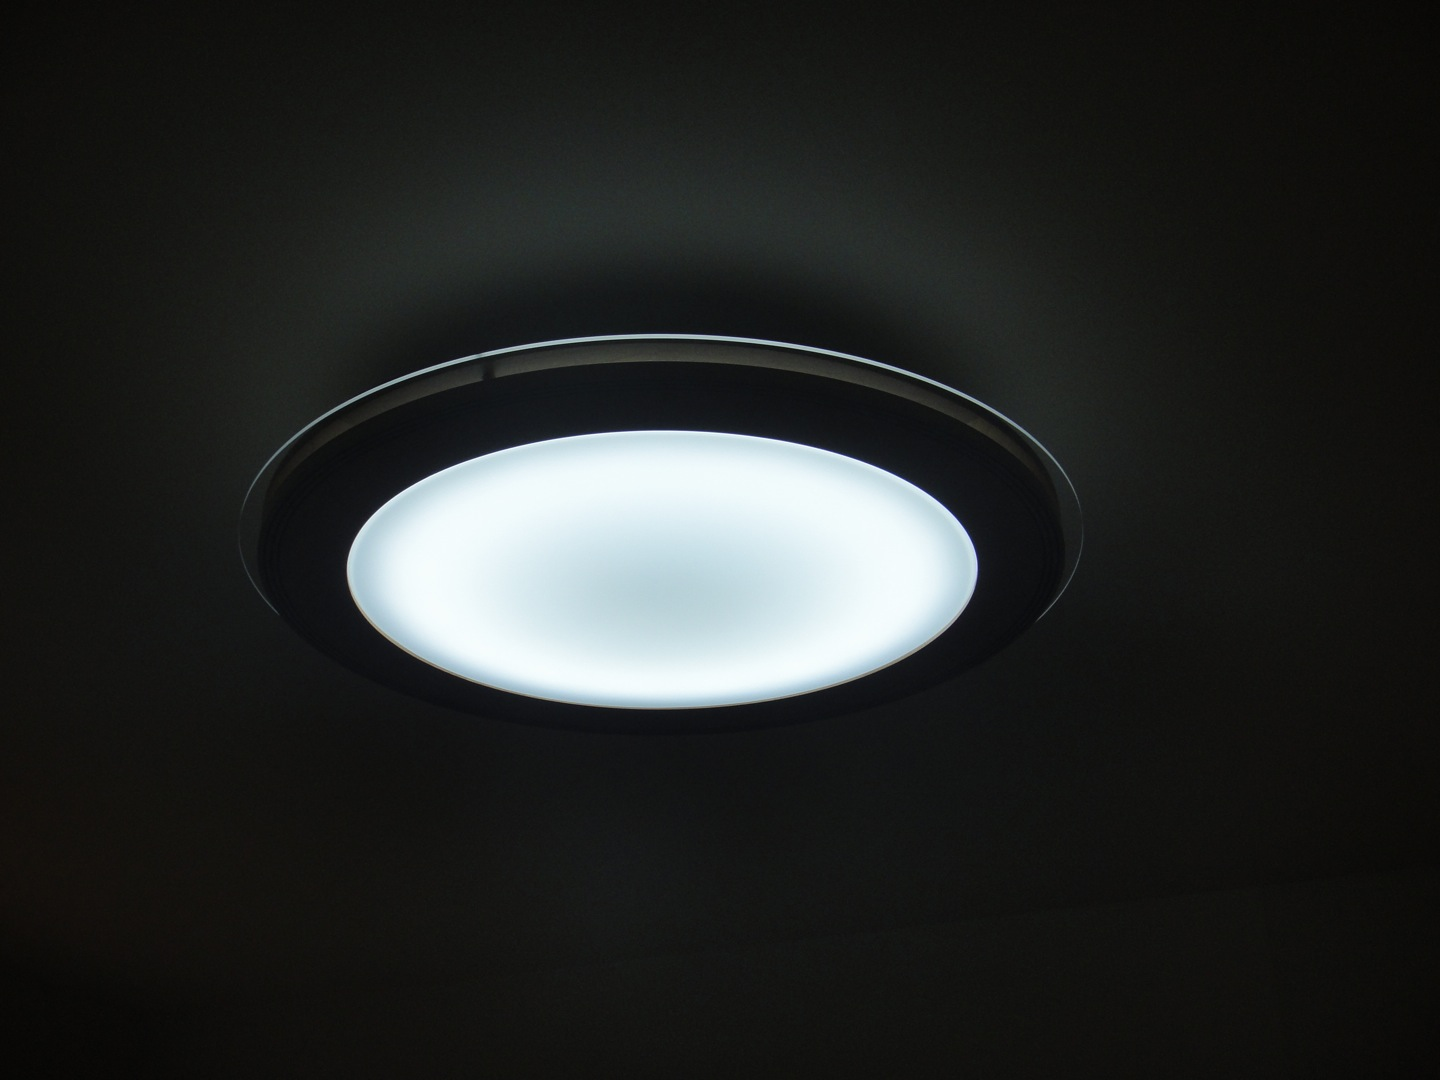 Cieling Lights 10 Facts About Ceiling Light Speakers Warisan Lighting